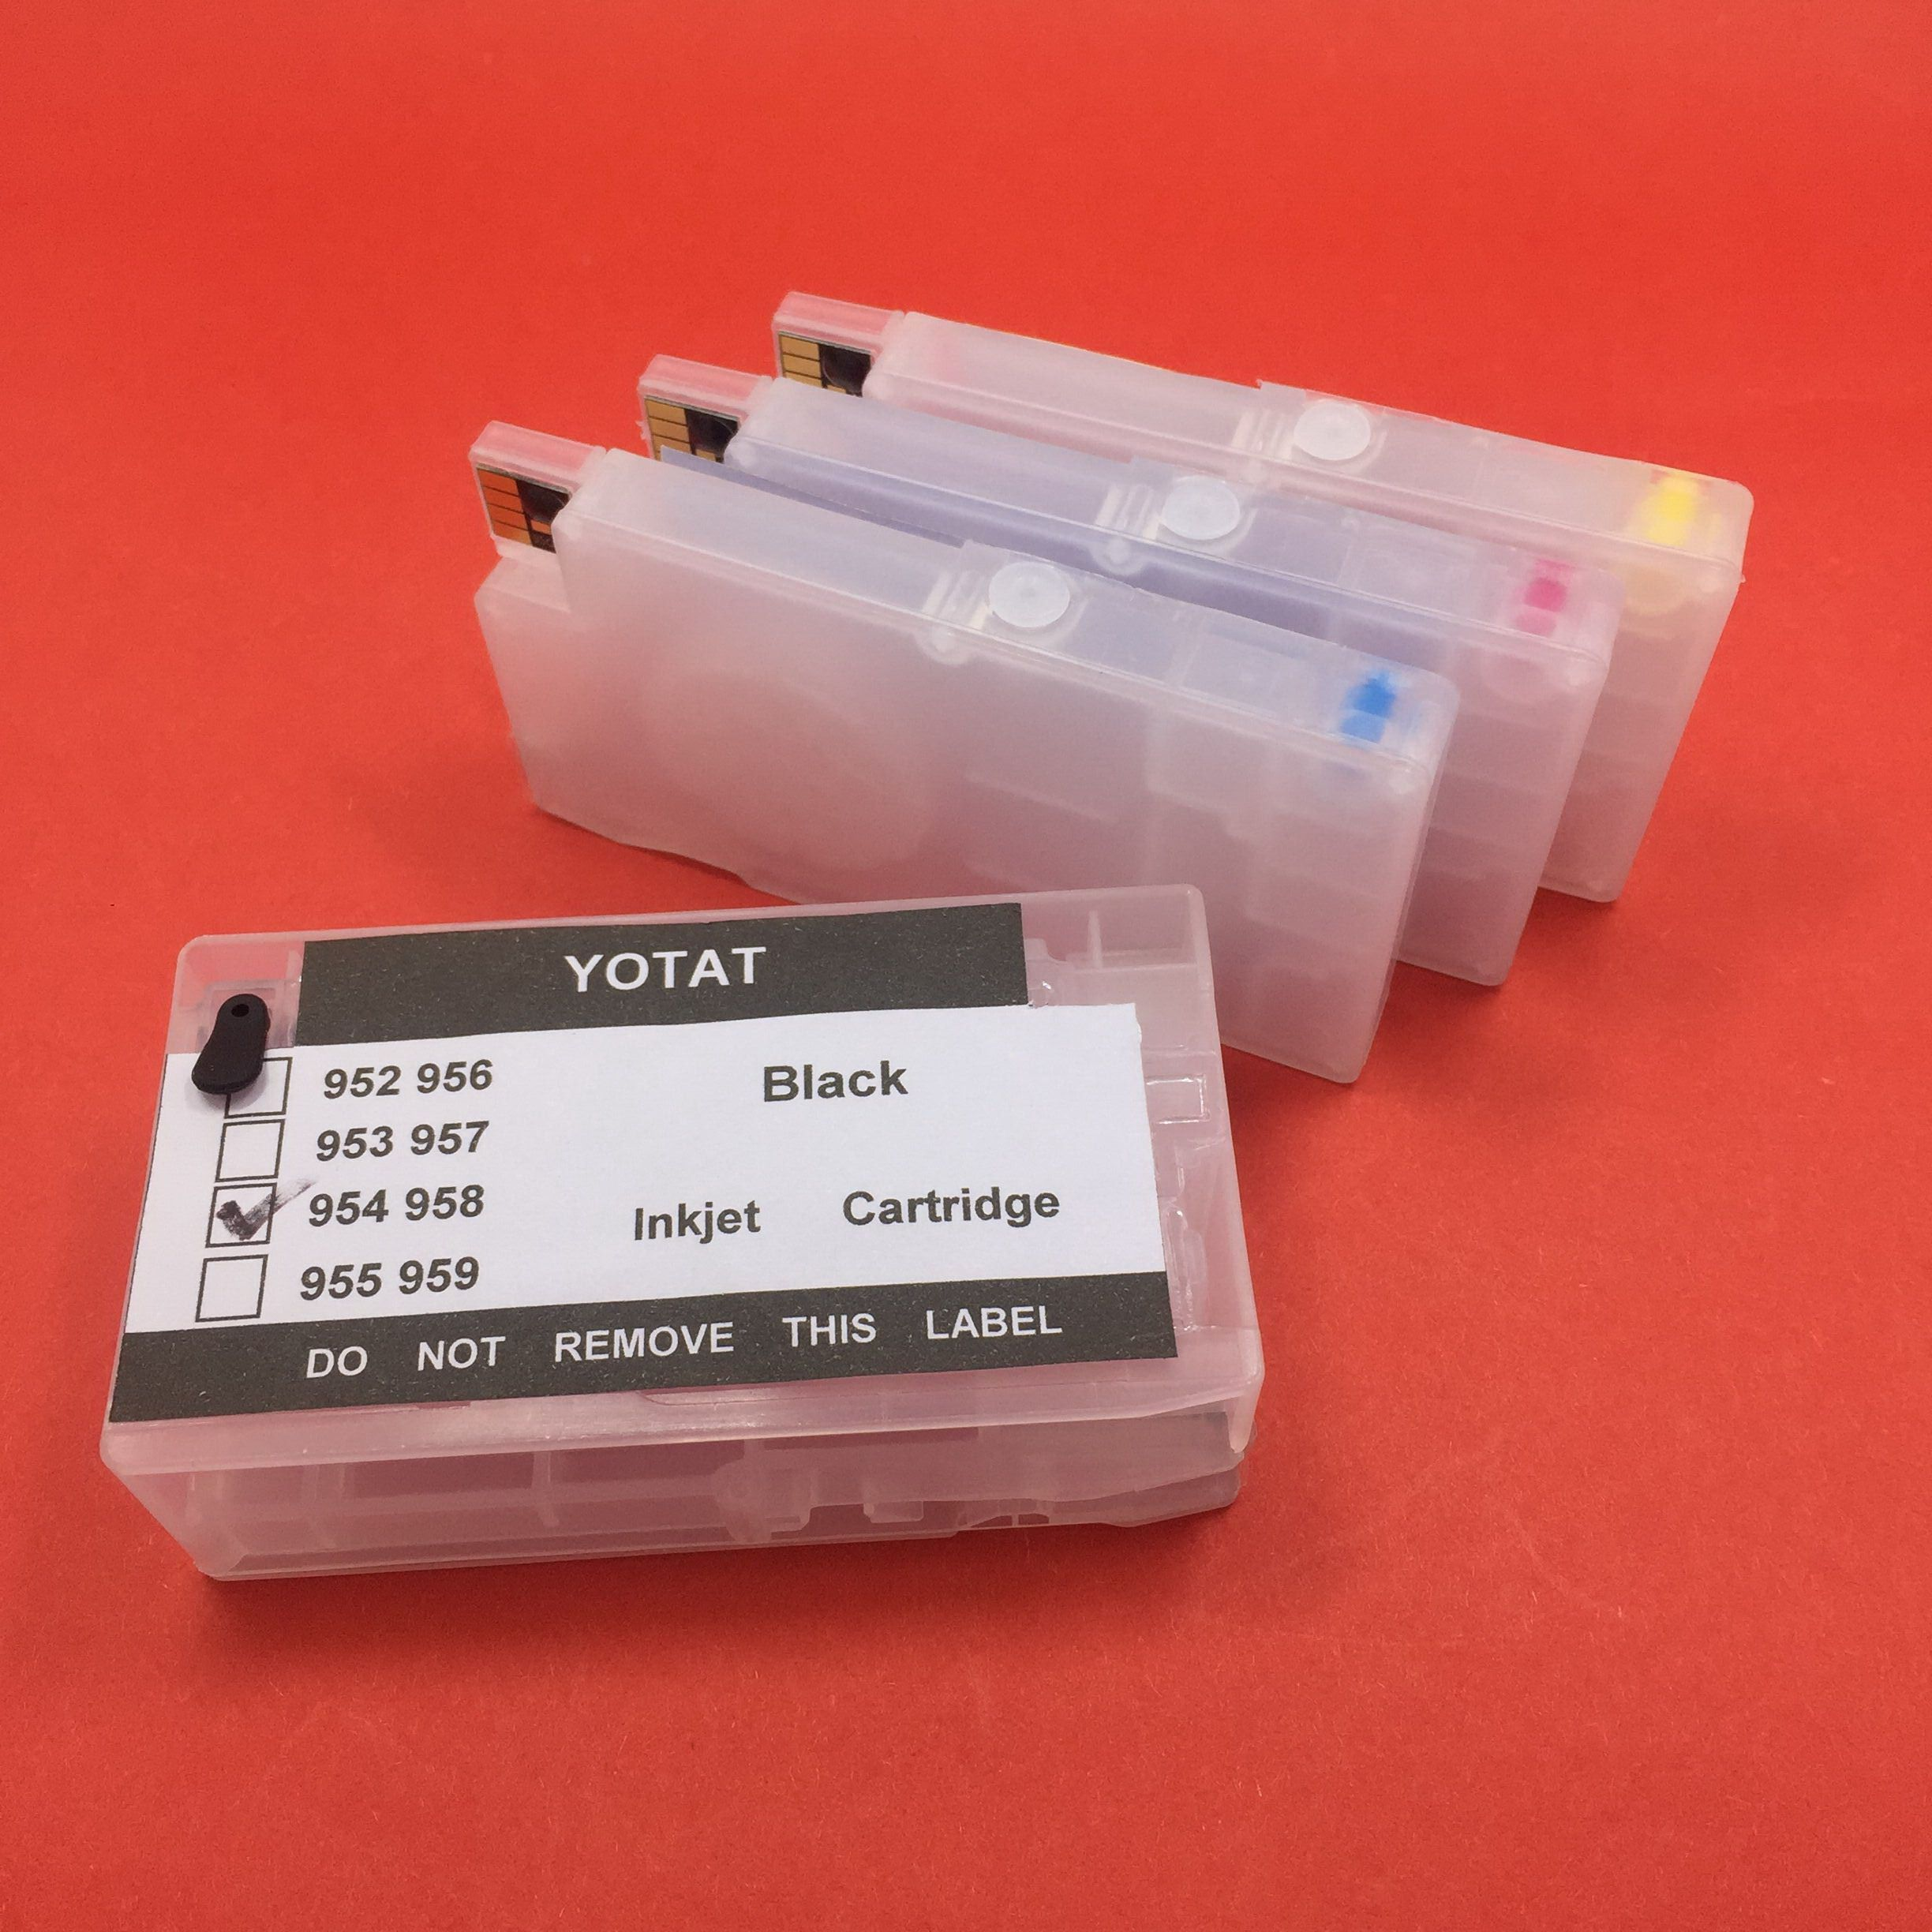 YOTAT Refillable for HP954 954XL ink cartridge for HP OfficeJet Pro 8702 7720 7730 7740 8210 8218 8710 8720 8730 (ARC chip)